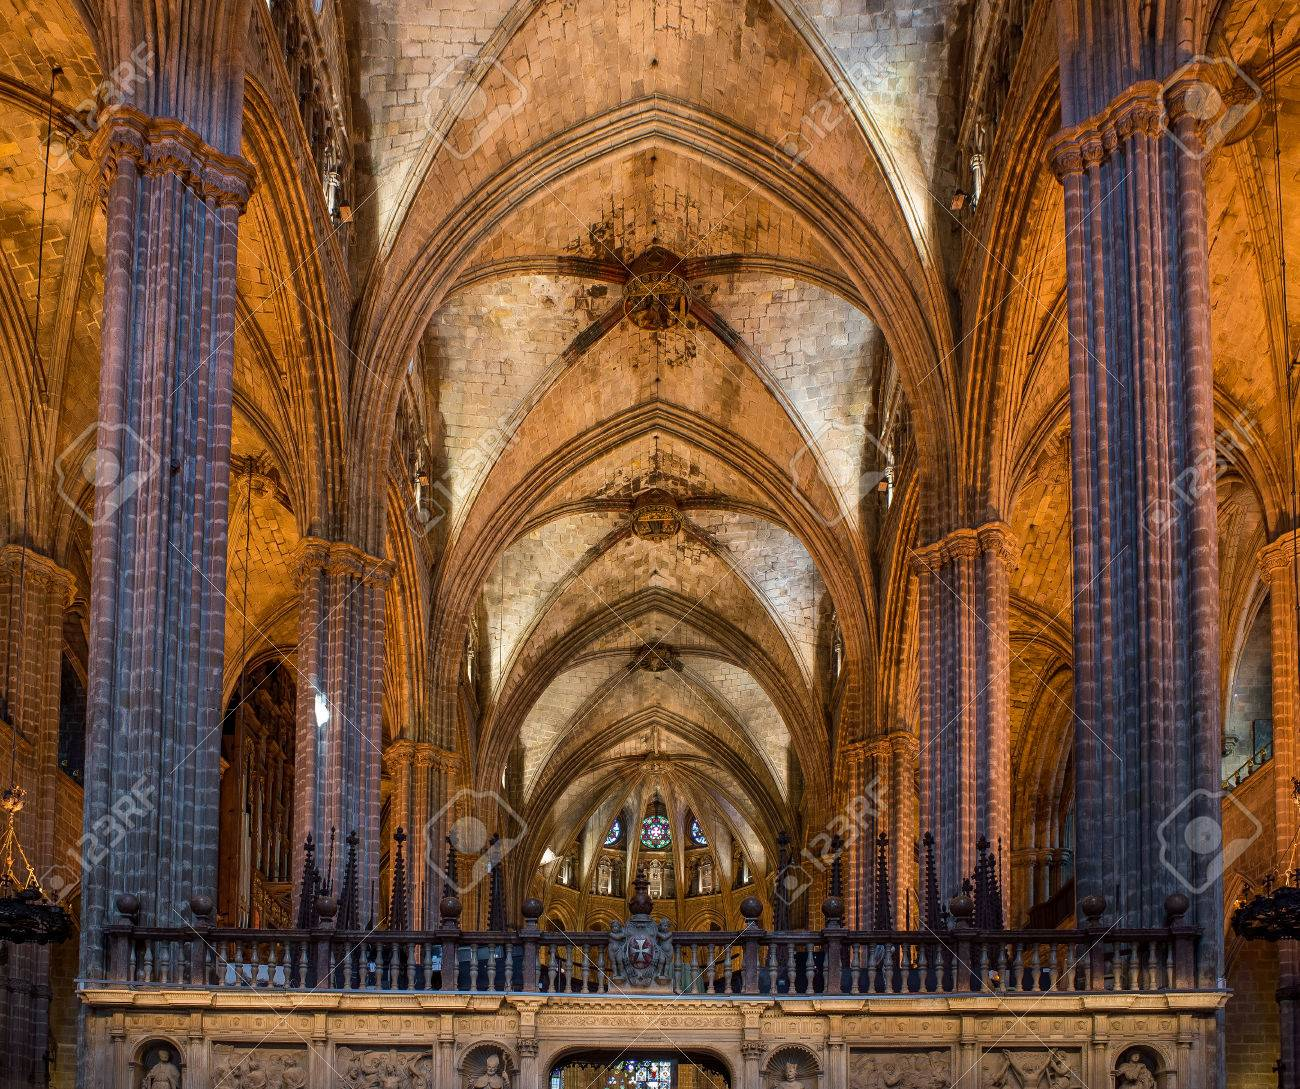 Nave Of Santa Eulalia Metropolitan Cathedral Basilica Barcelona Spain Interior View Towards